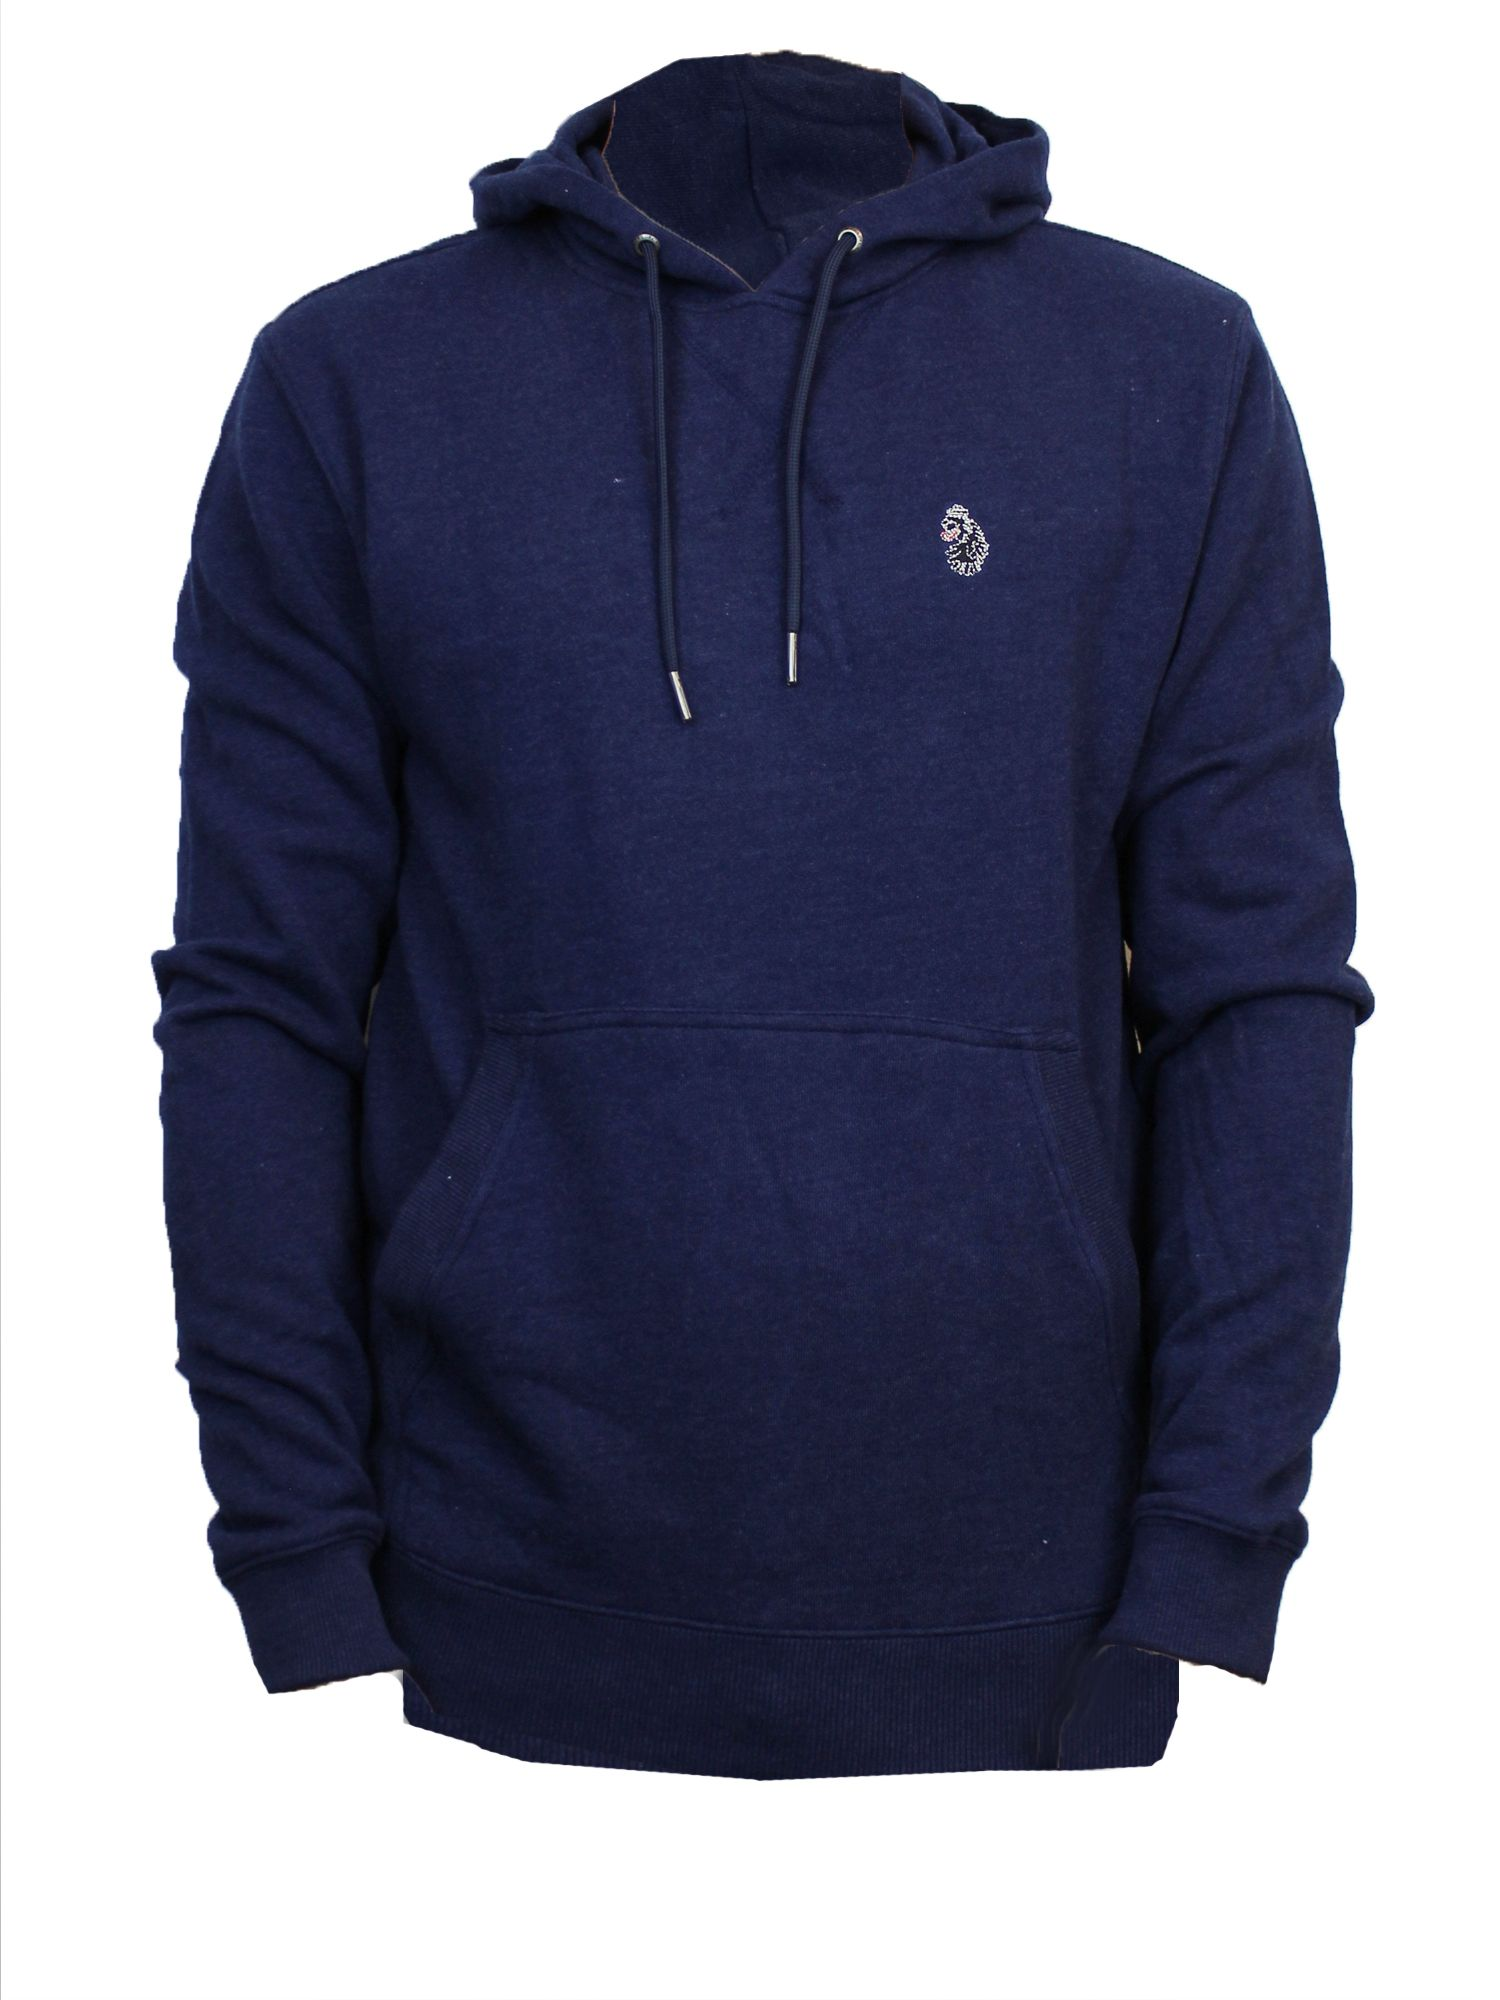 Men's Luke 1977 Neptune pull over hoodie, Indigo